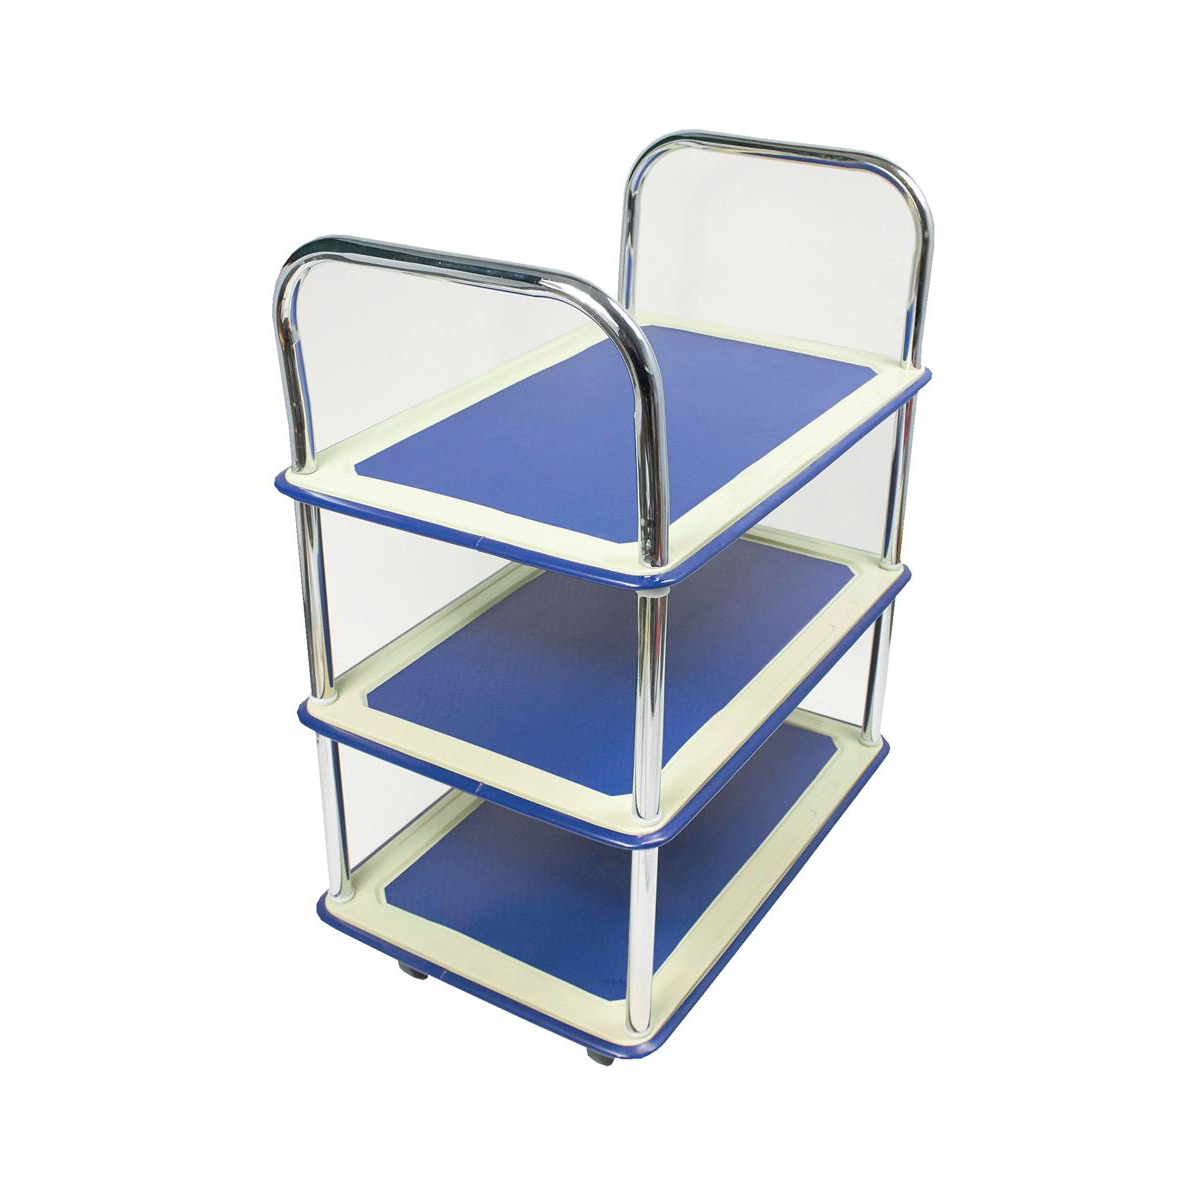 Trolleys or accessories 5 Star Facilities Trolley Lightweight Steel Frame 3 Shelf Capacity 120kg Chrome W470xD725xH950mm